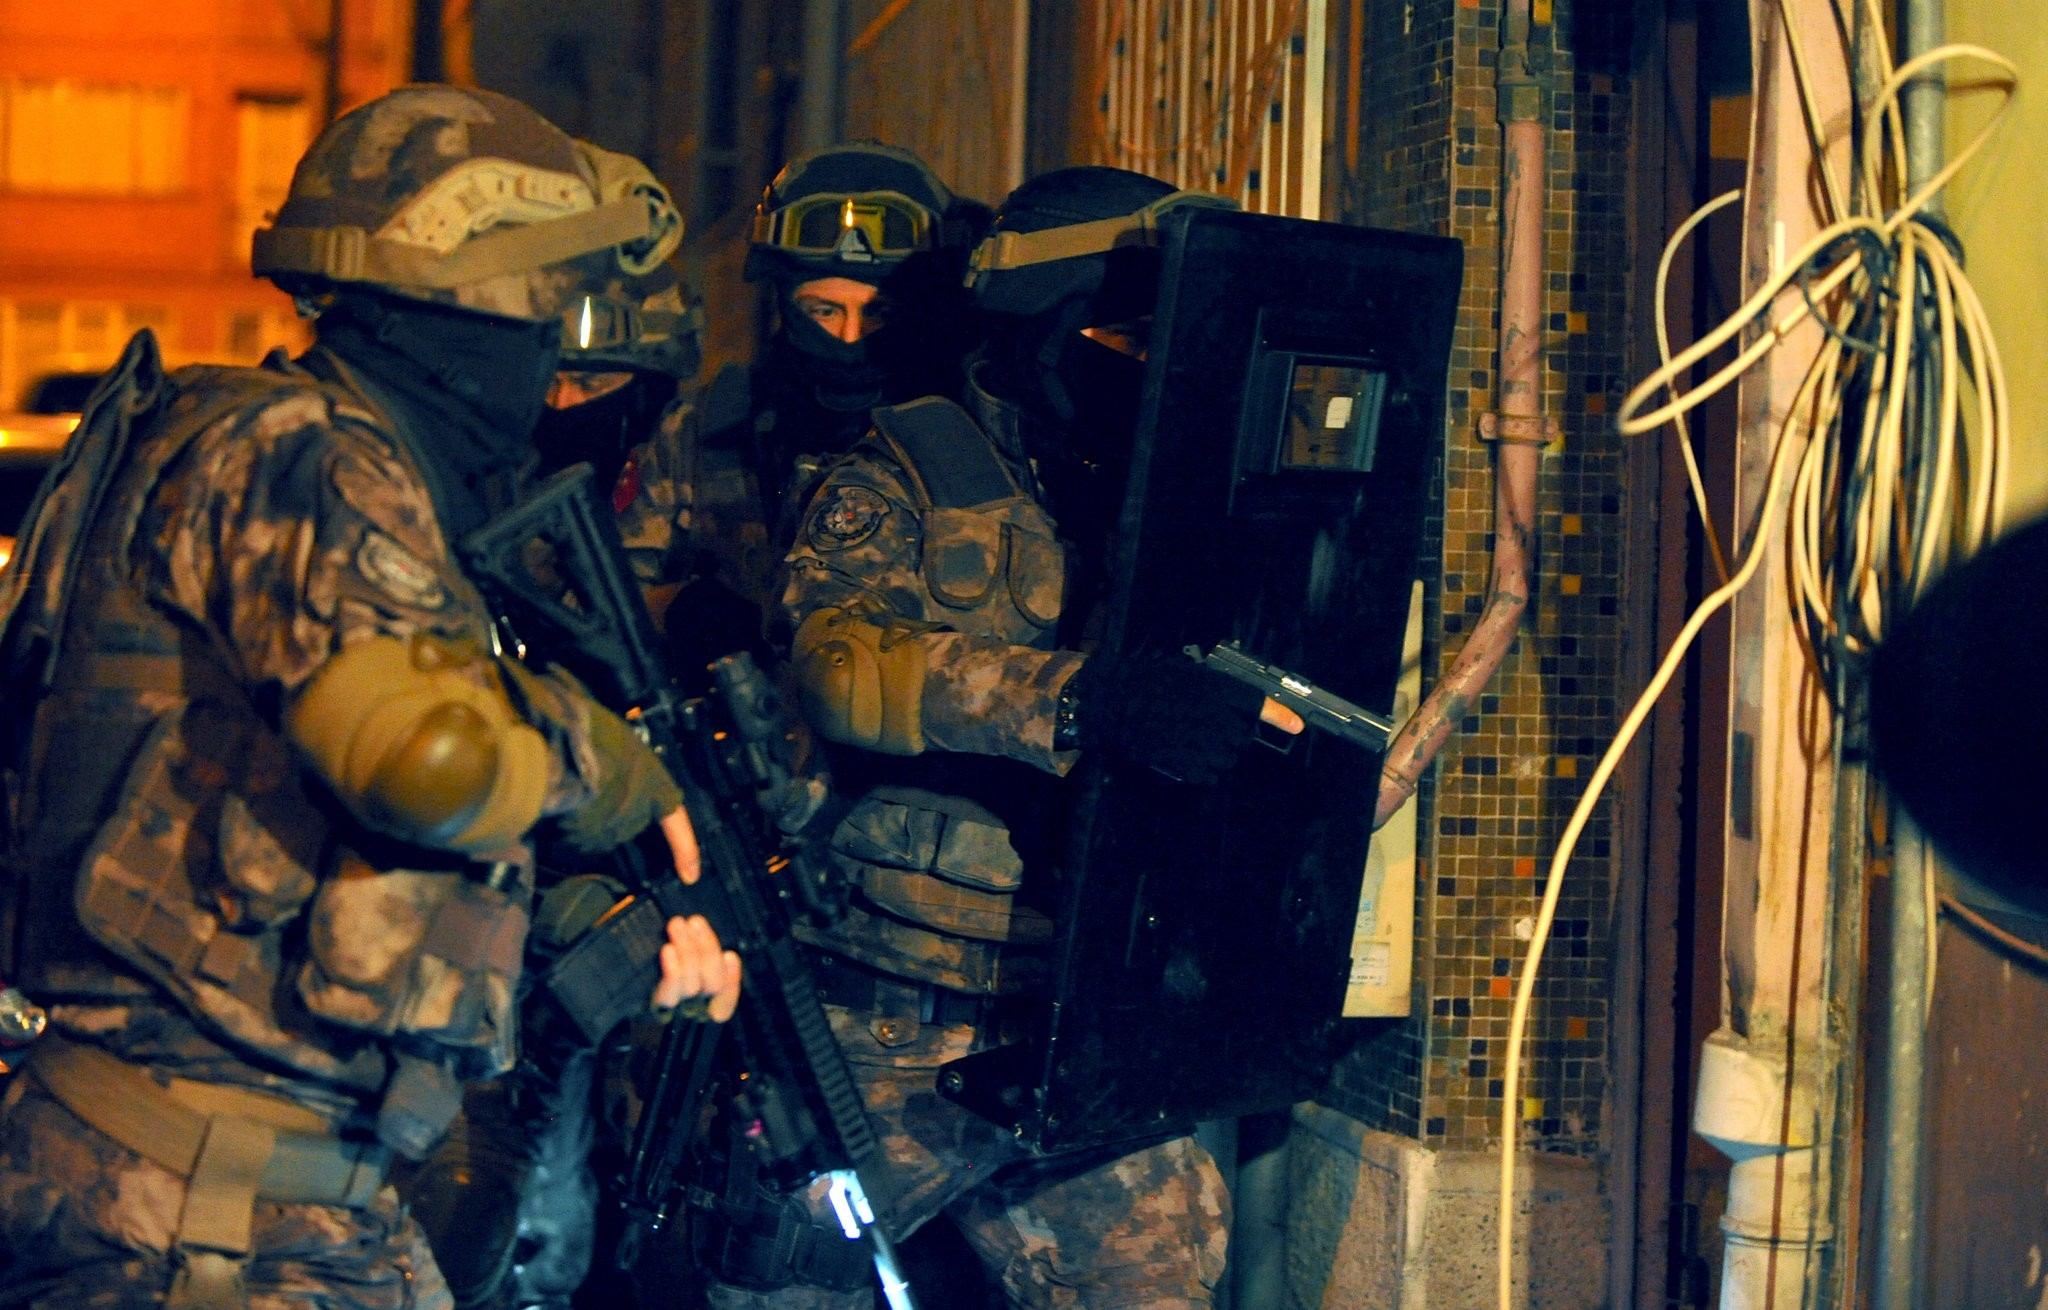 Special Operations police storm a safe house used by Daesh militants in the southern city of Adana in July 2017. The terrorist group faces frequent raids across Turkey as it loses more ground in Syria.